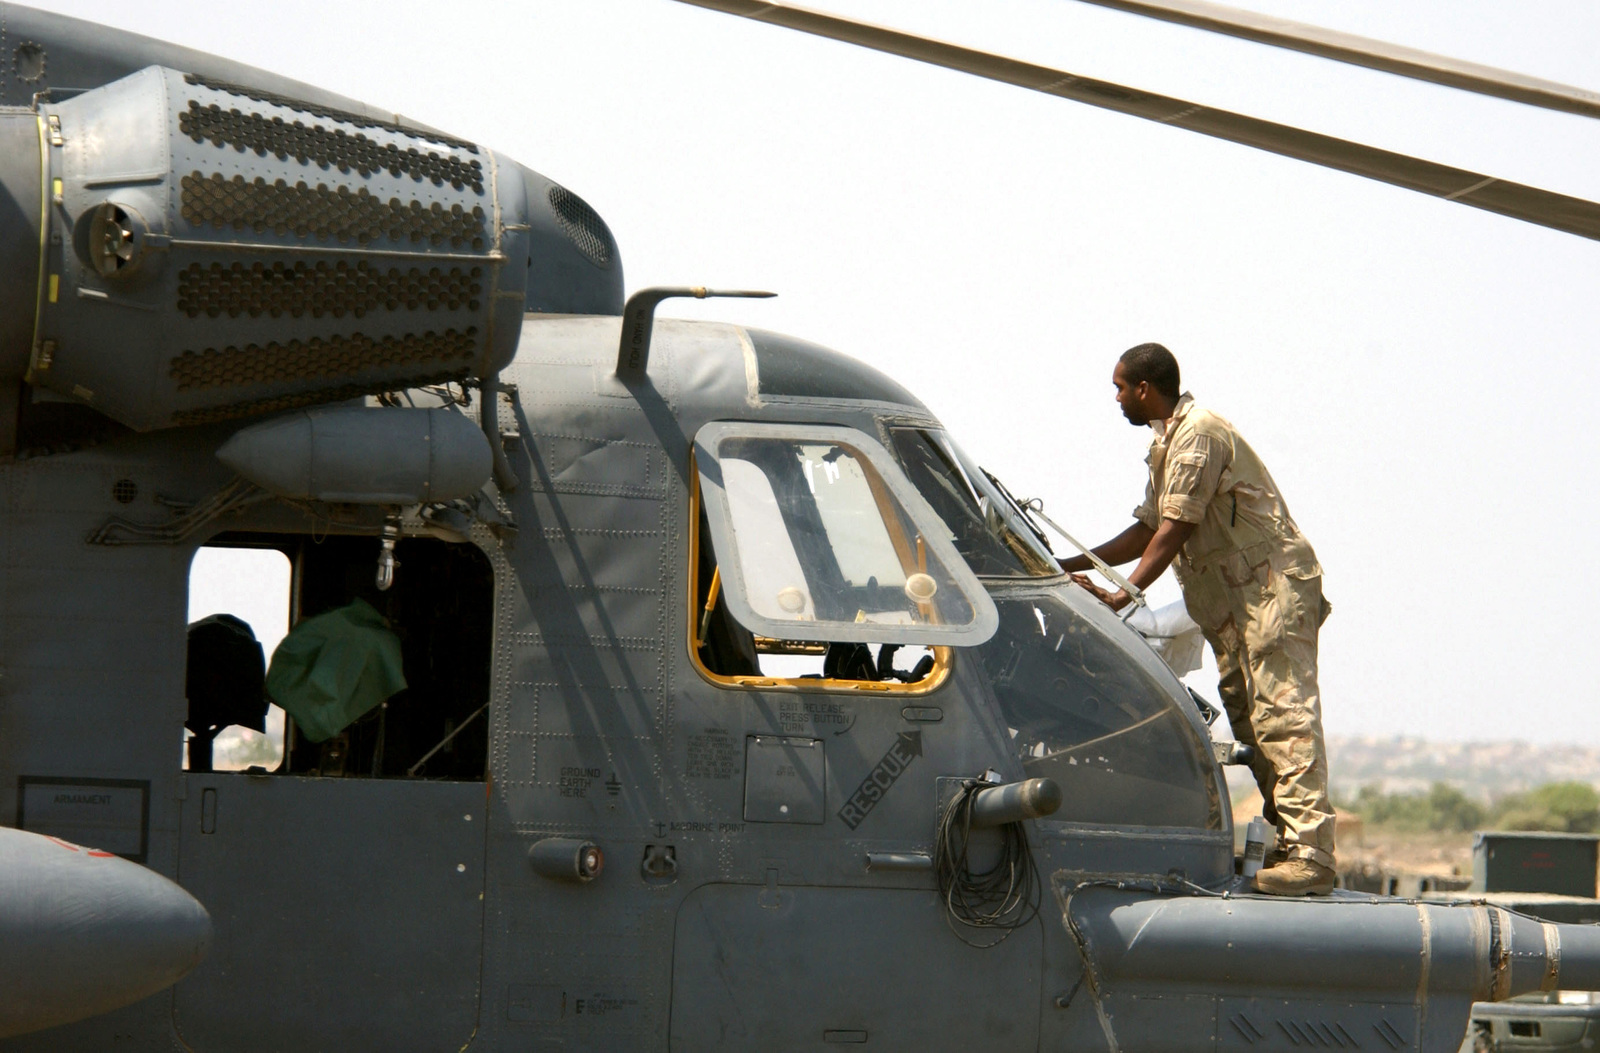 A US Air Force (USAF) maintenance member cleans the windshield of a USAF MH-53M Pave Low IV on the flightline of Camp Lemonier, Djibouti, during Operation ENDURING FREEDOM